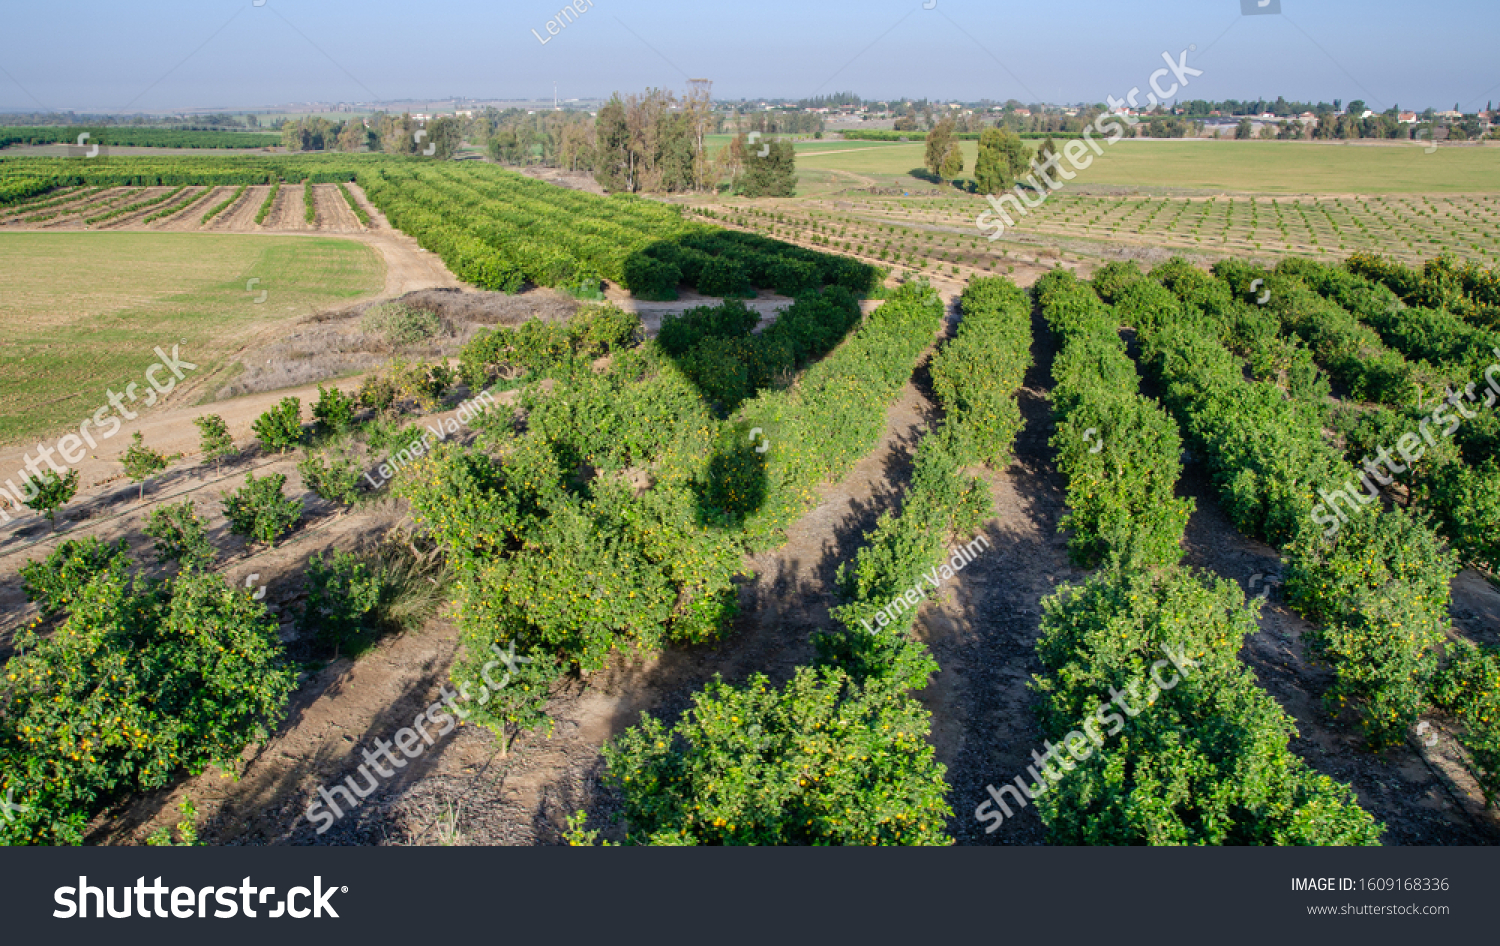 The aerial or bird view on the orchard of orange trees from hot air balloon #1609168336